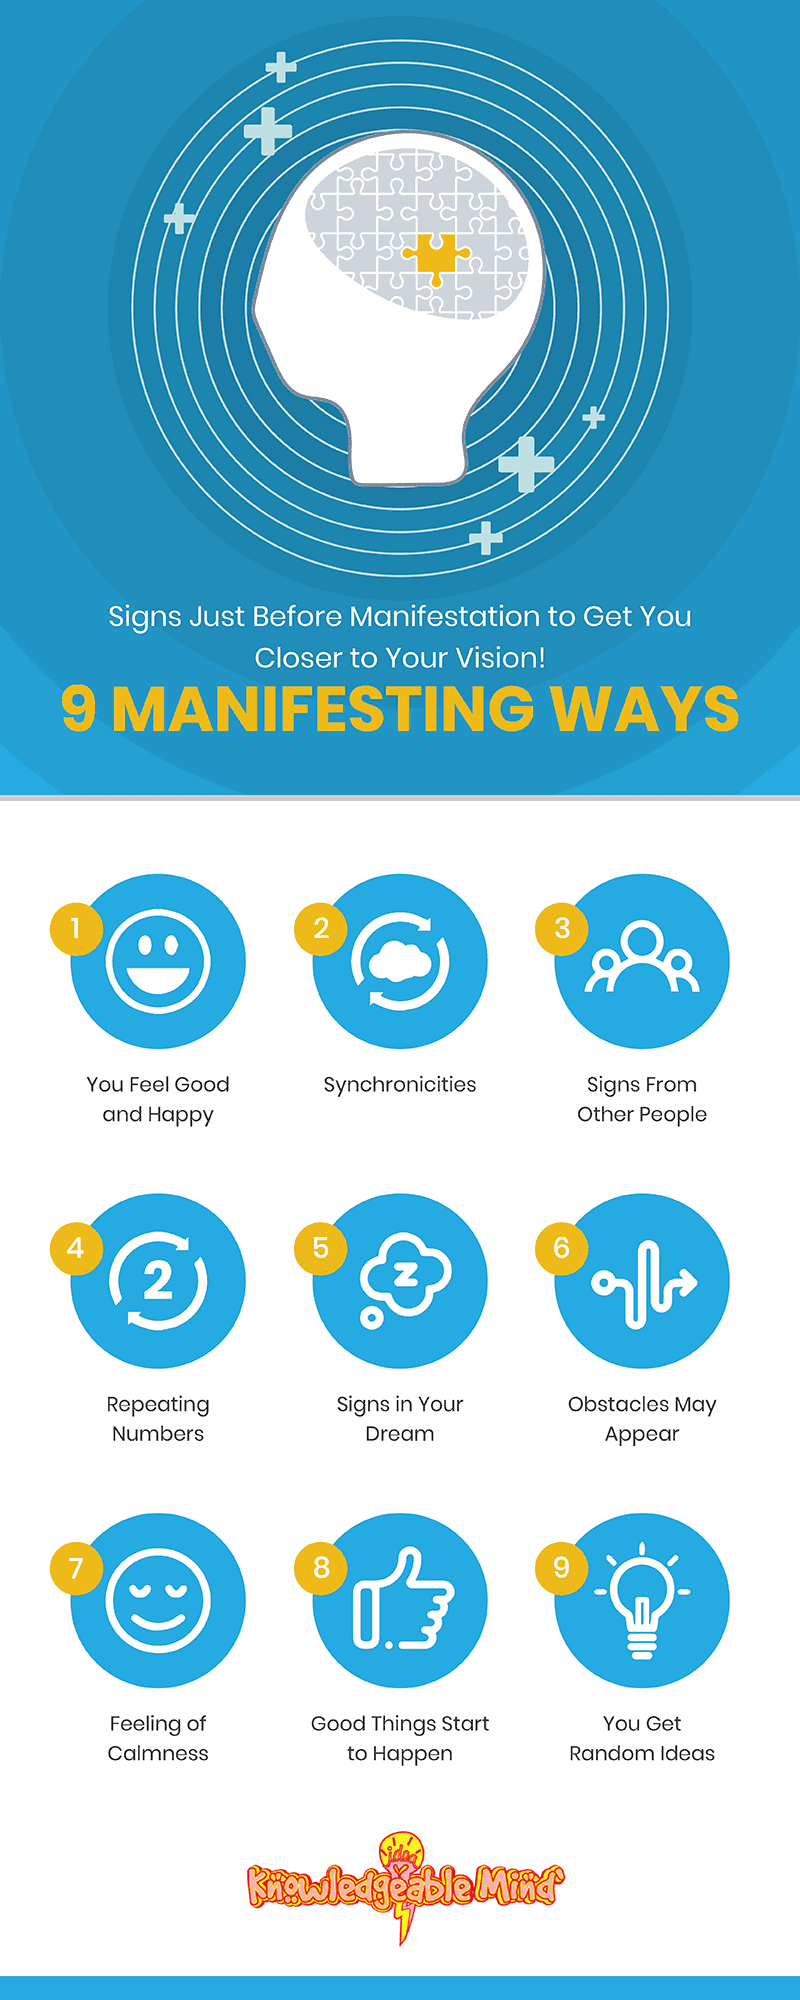 Signs Just Before Manifestation to Get You Closer to Your Vision! 9 Manifesting Ways (resized)